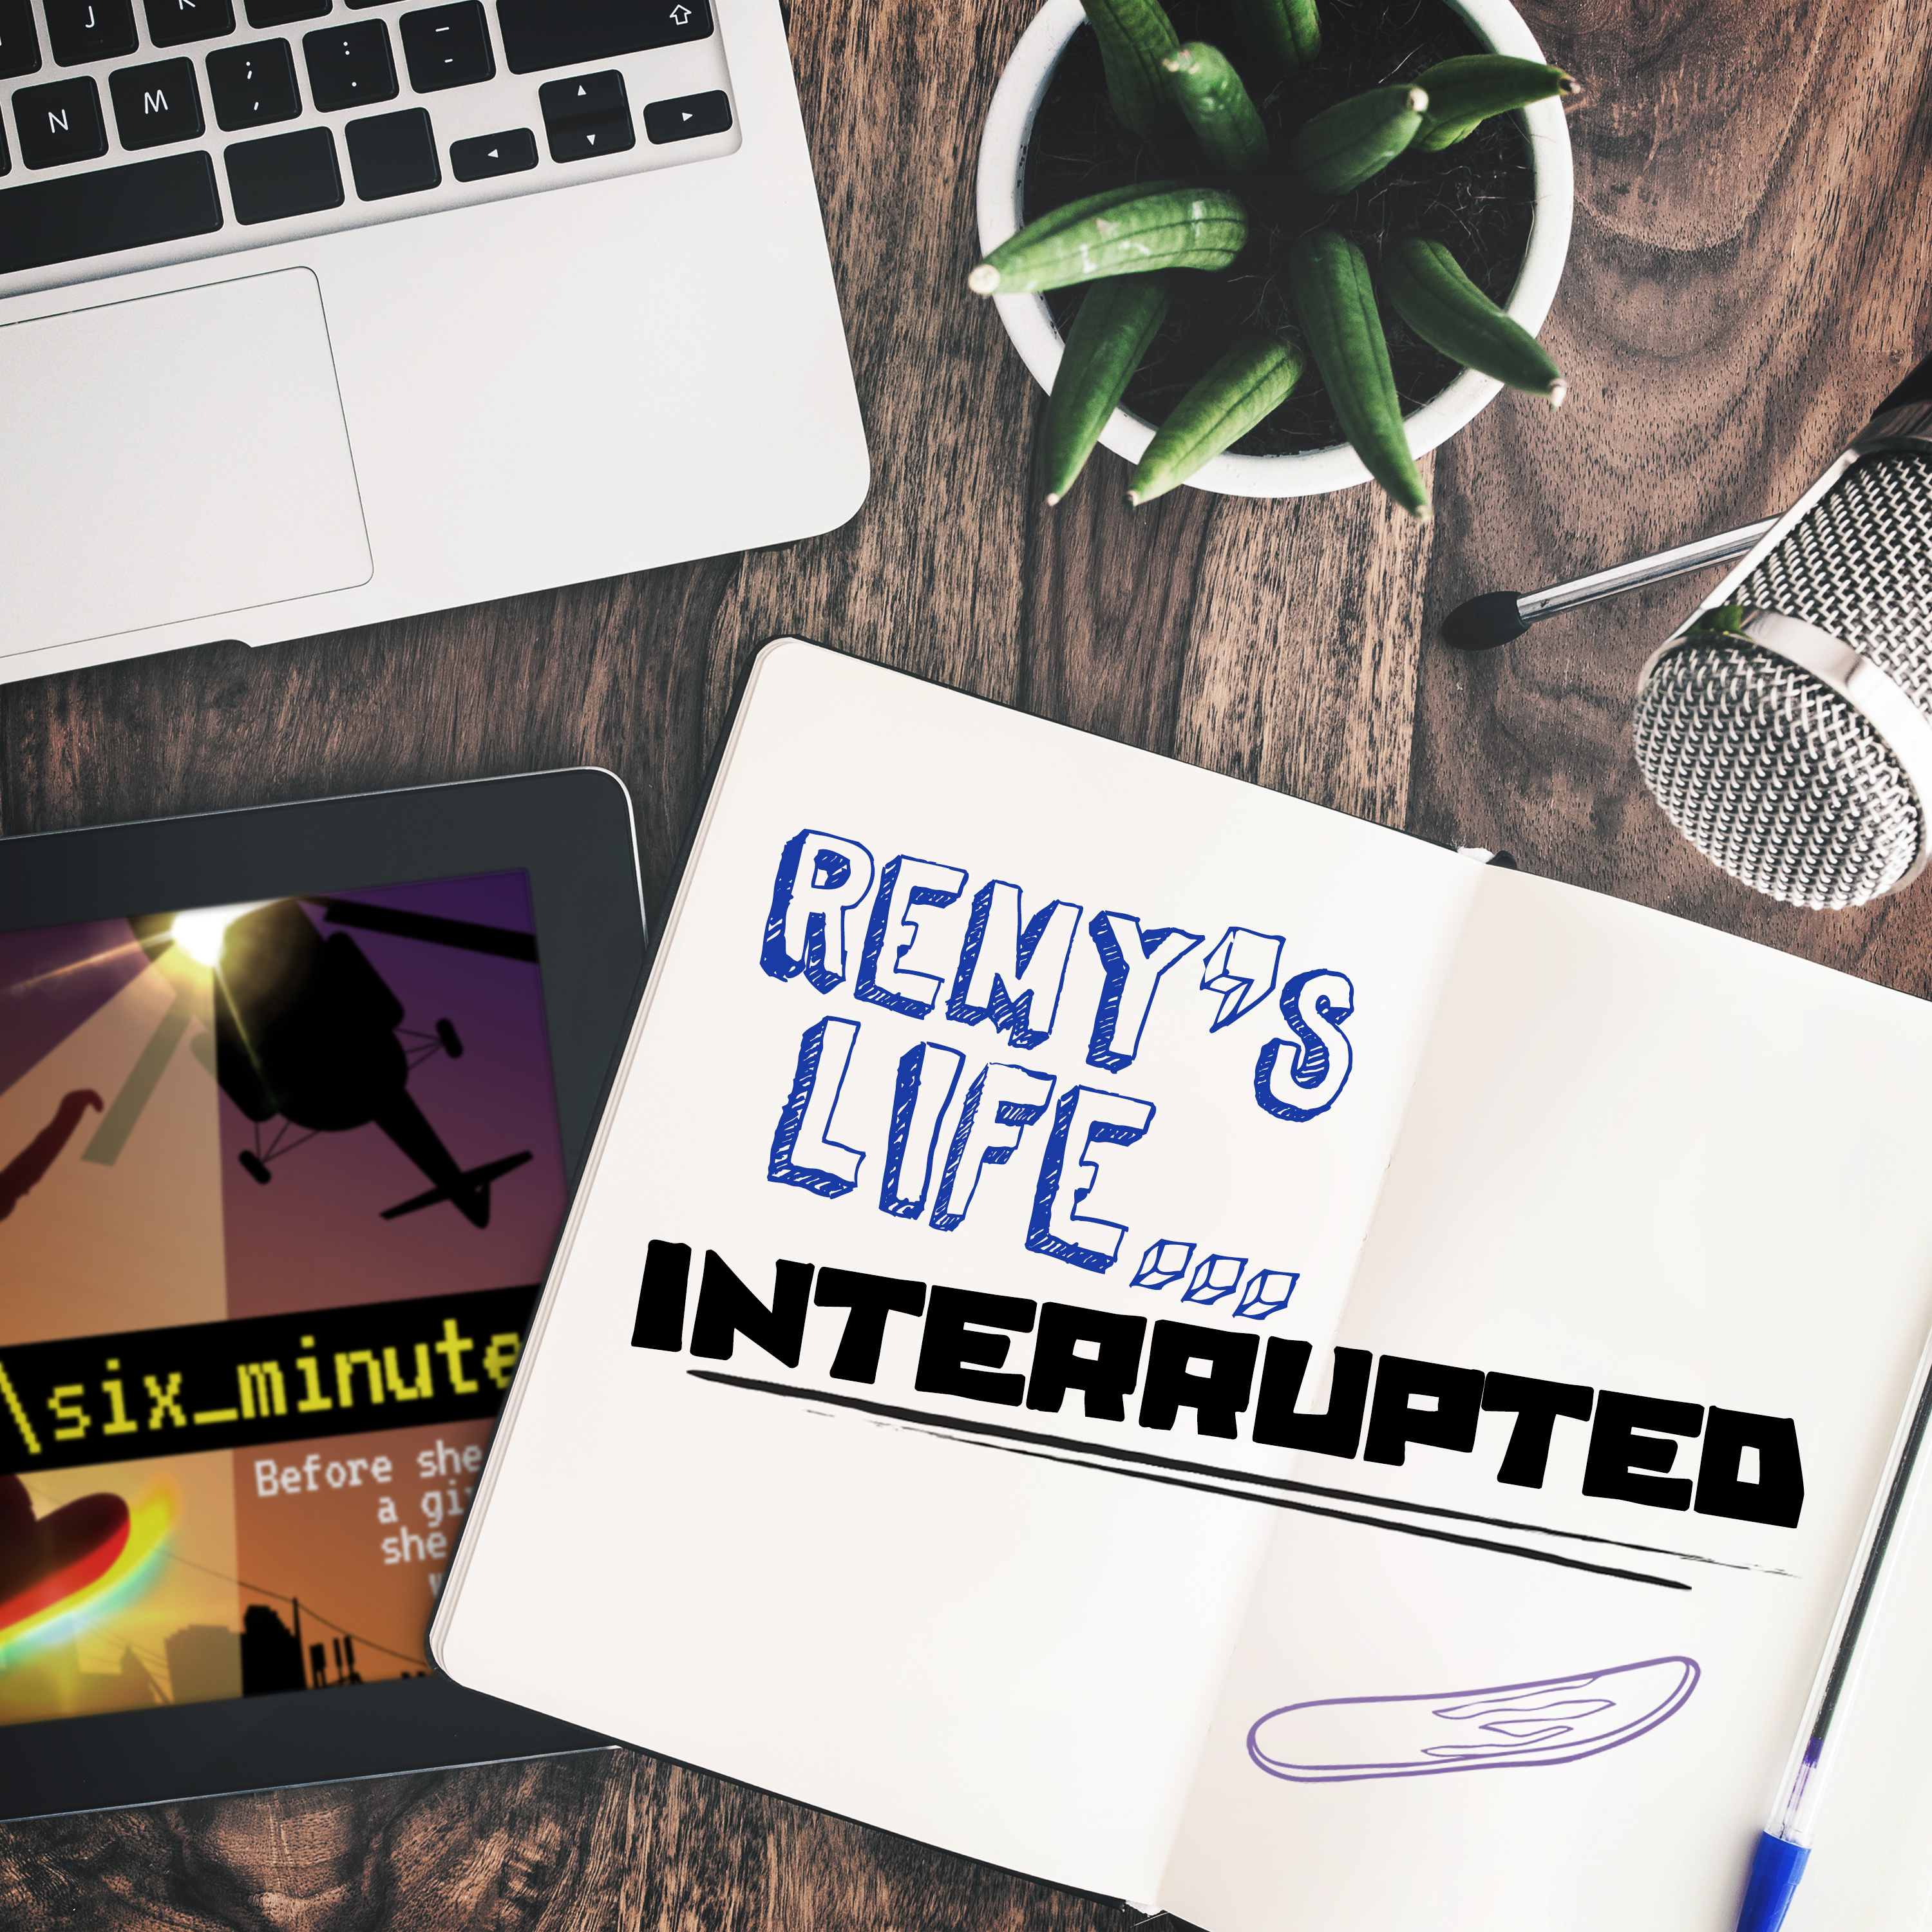 Remy's Life Interrupted: EP66